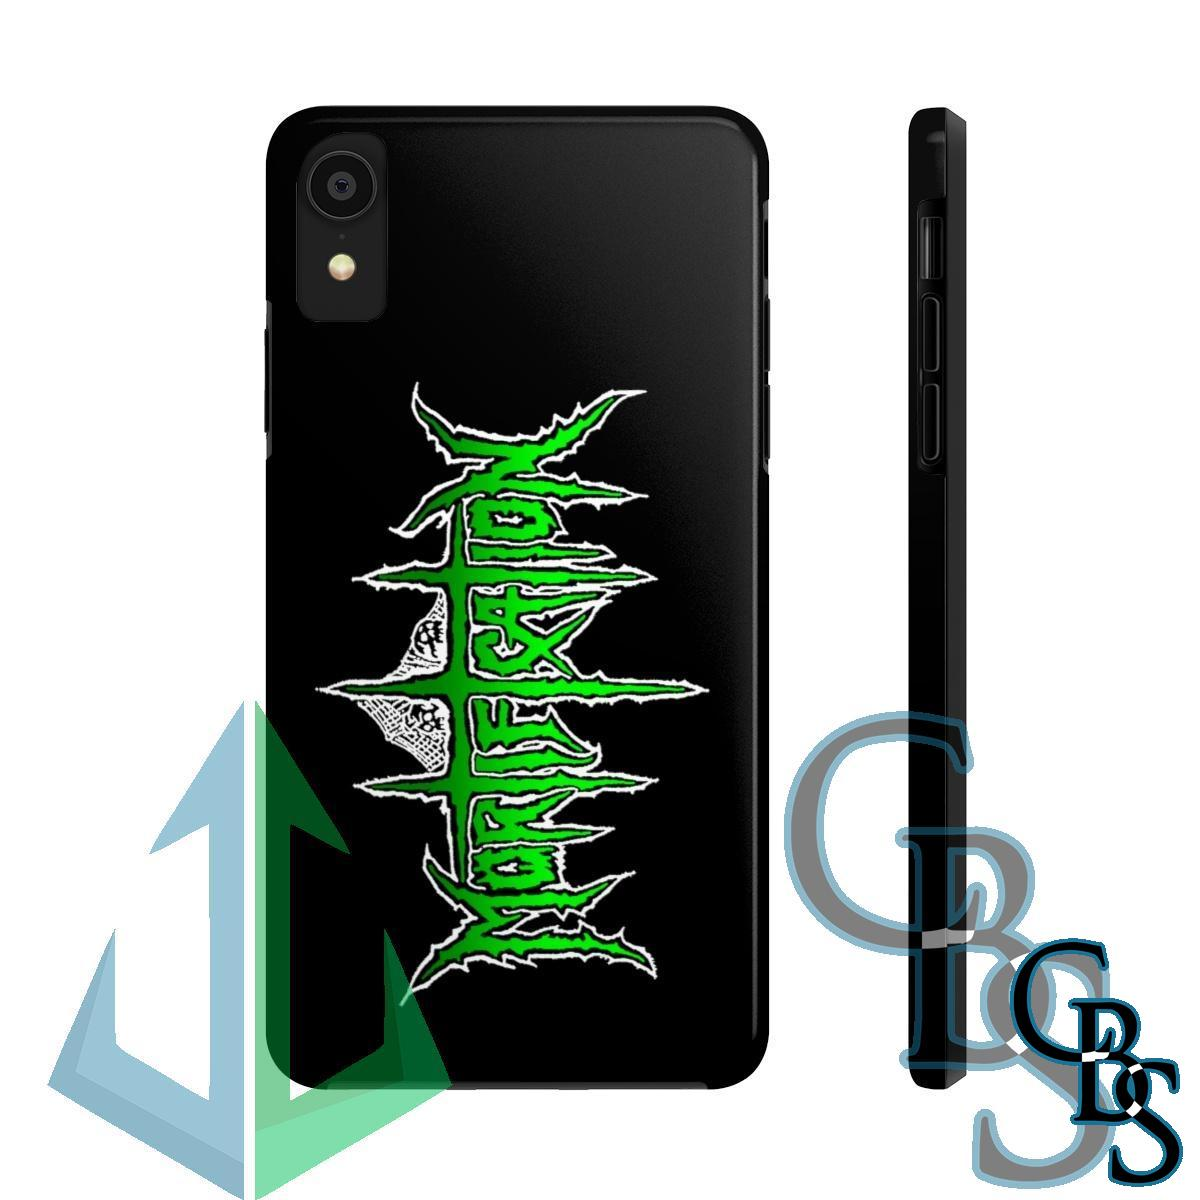 Mortification Green Logo iPhone Cases (iPhone 7/7 Plus, iPhone 8/8 Plus, iPhone X, XS, XR, iPhone 11, 11 Pro, 11 Pro Max)